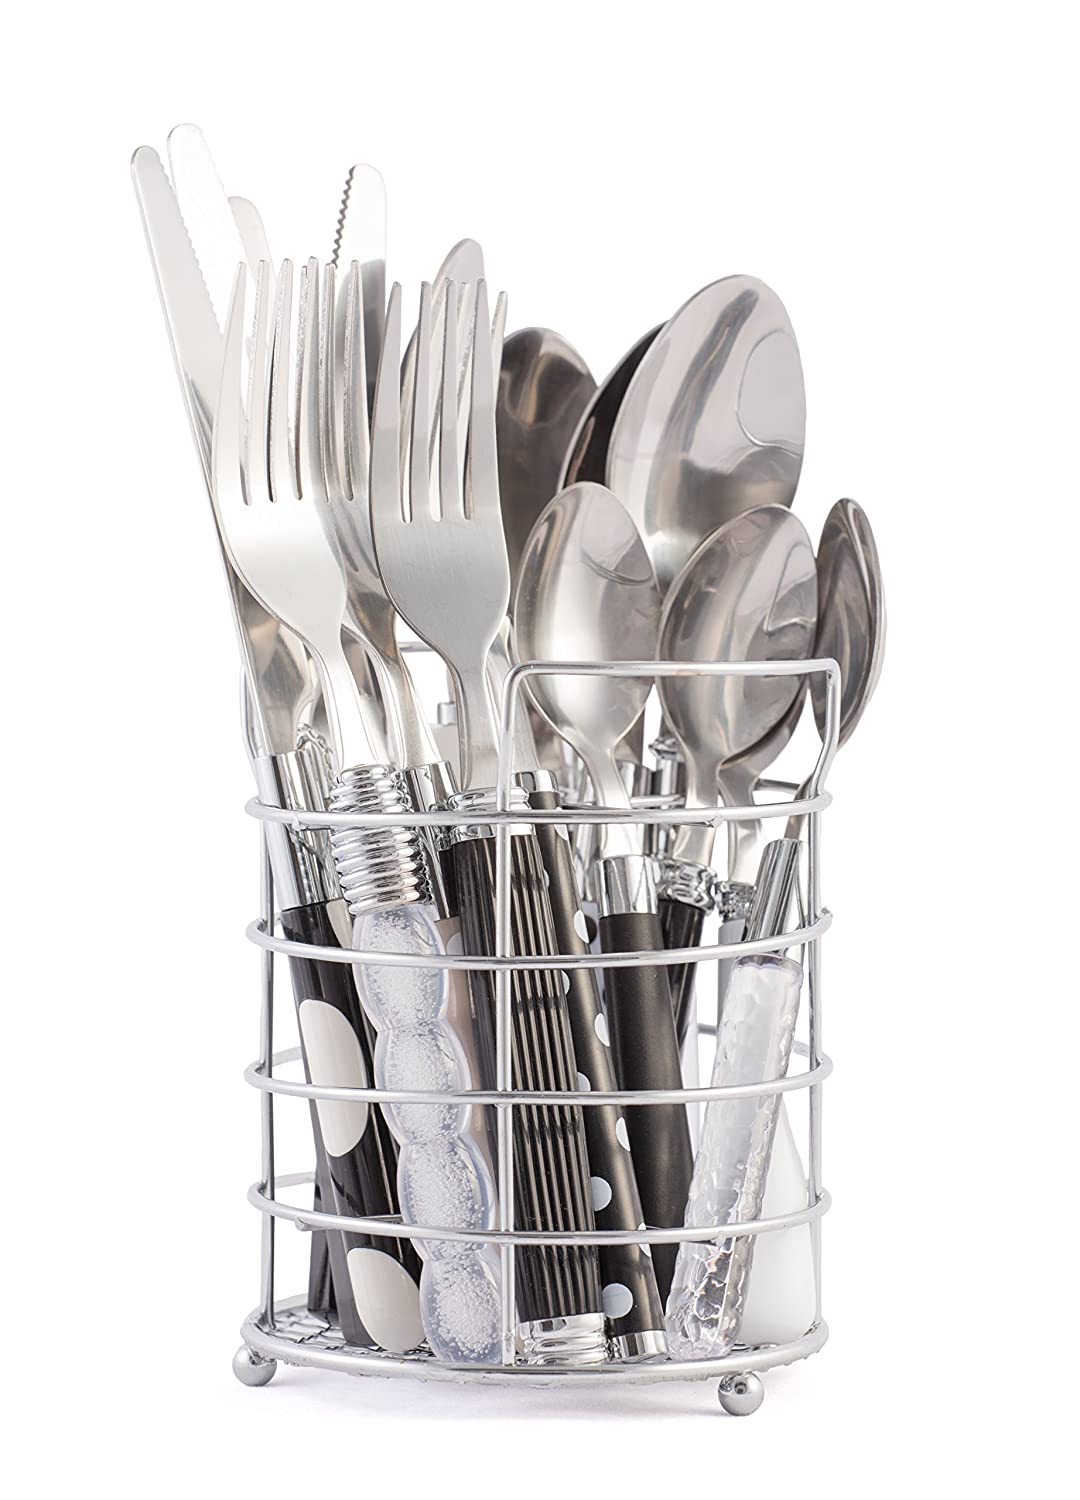 Gypsy Color Mix and Match Lifestyle Cutlery and Eating Utensils Gift Set of 16 pieces, Colorful Flatware Set Crystal Clear, Black, Grey and White SYNCHKG111644